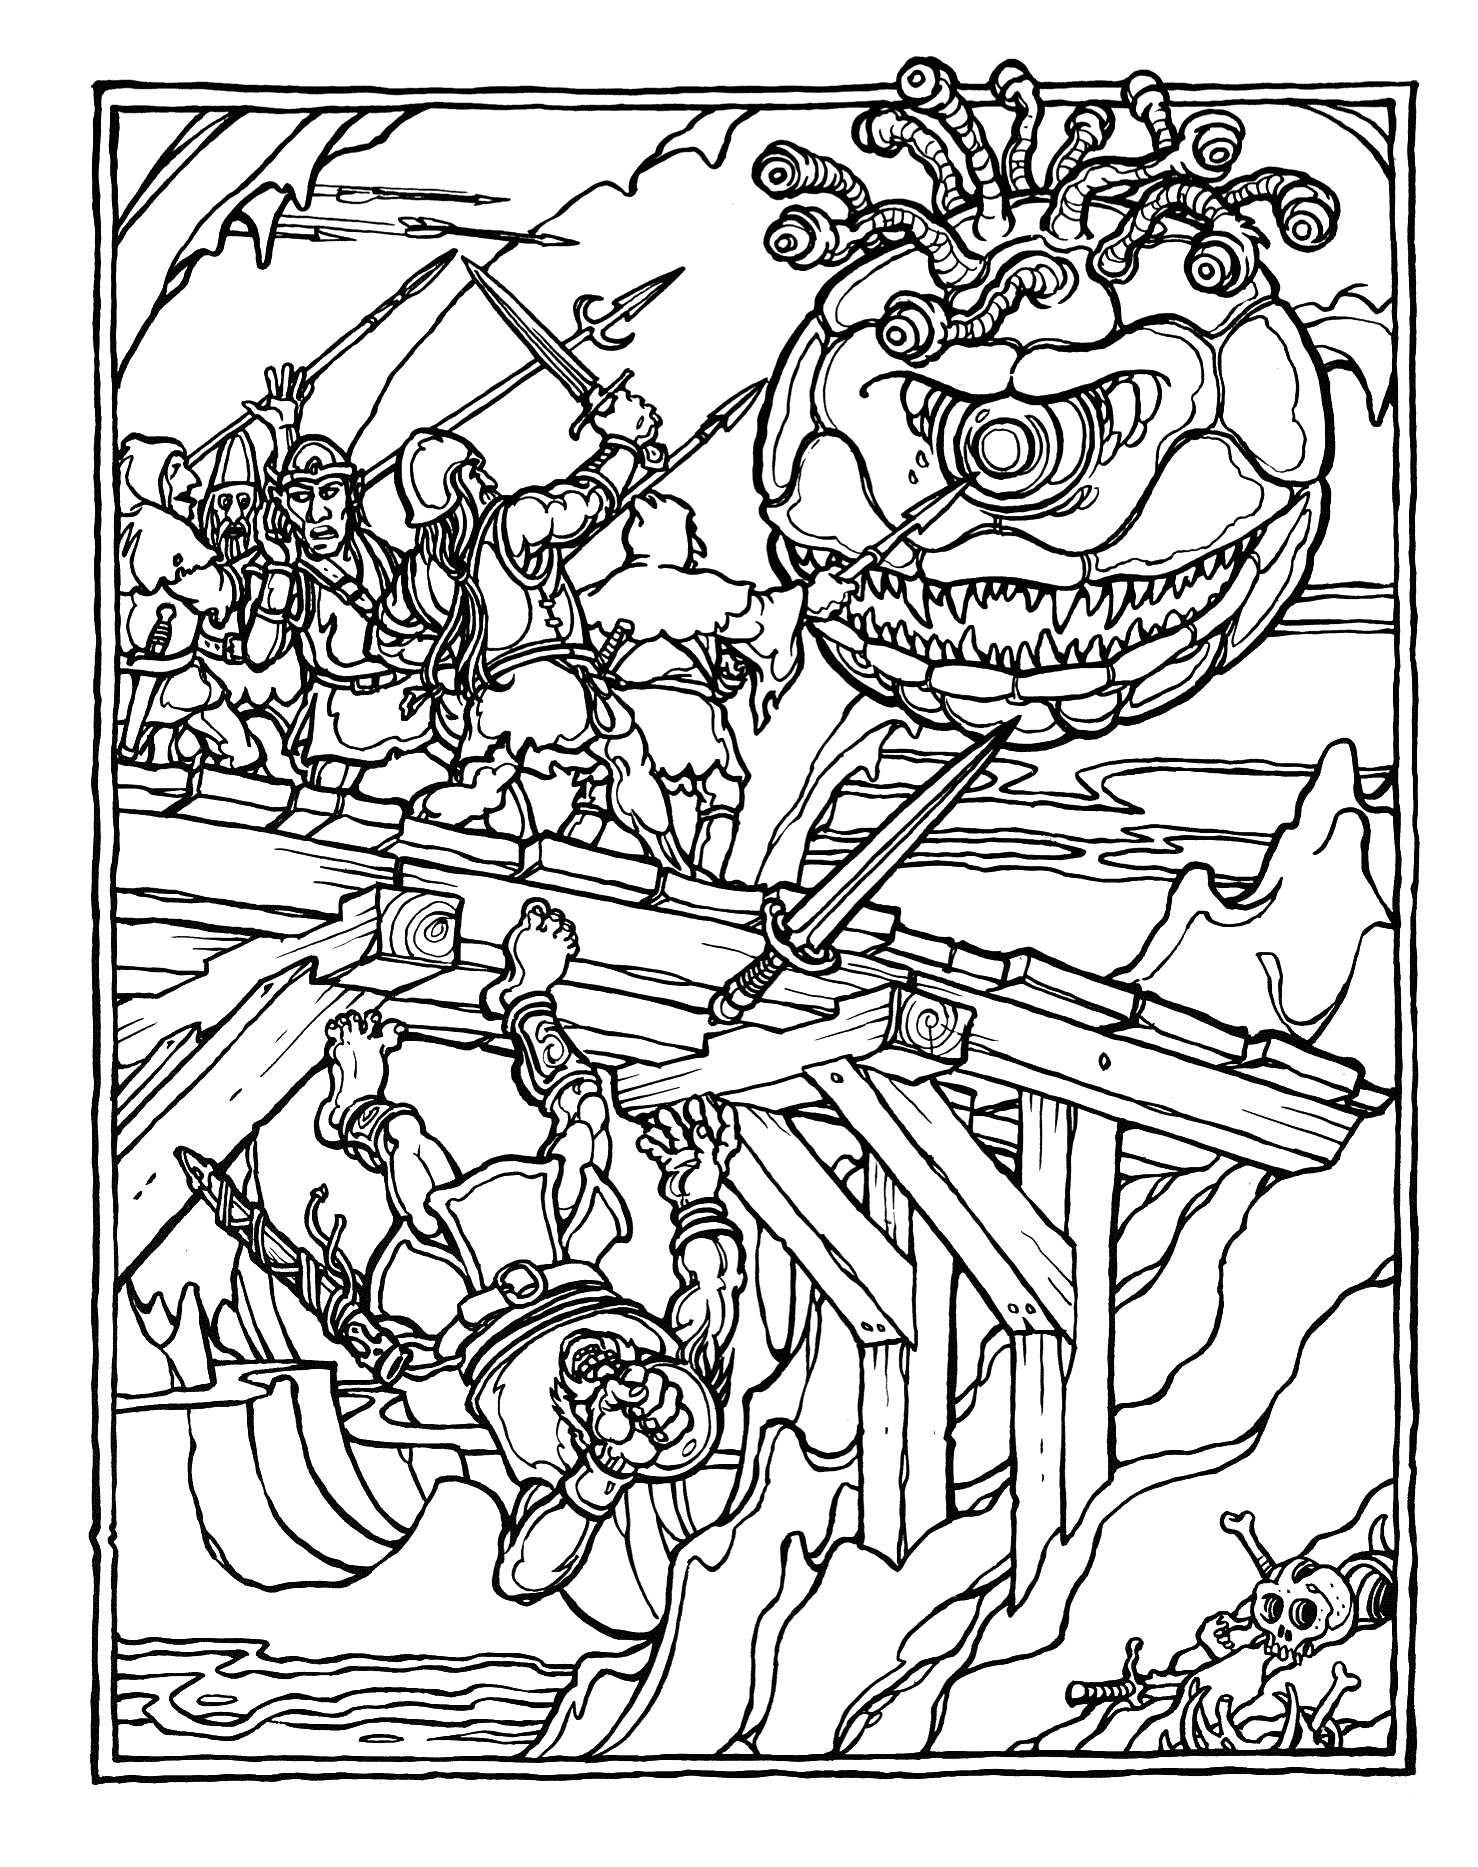 dungeons and dragons coloring pages - photo#3